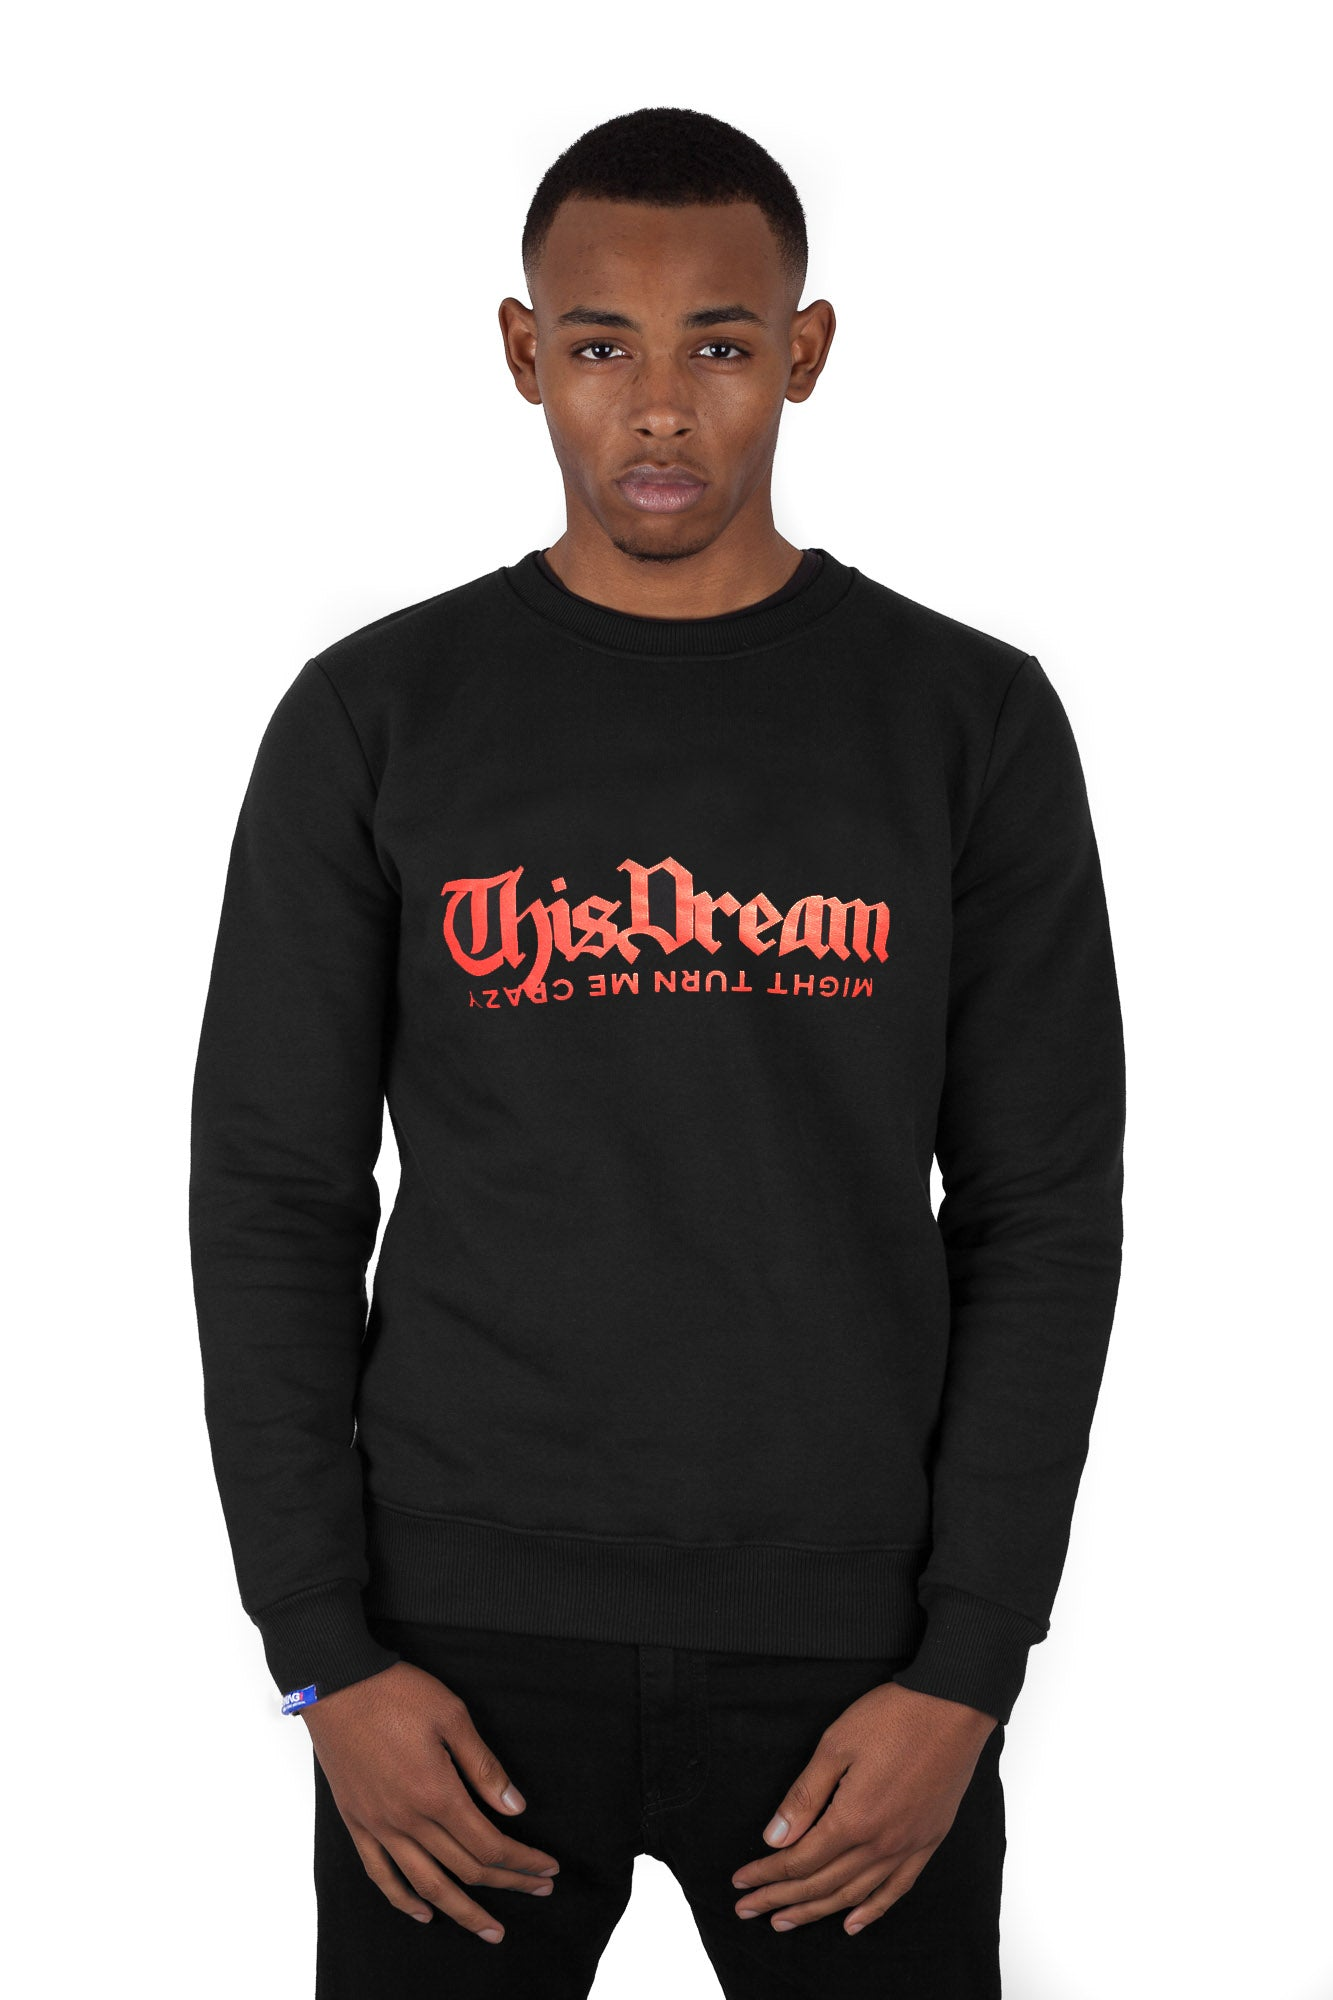 This Dream Might Turn Me Crazy Sweatshirt